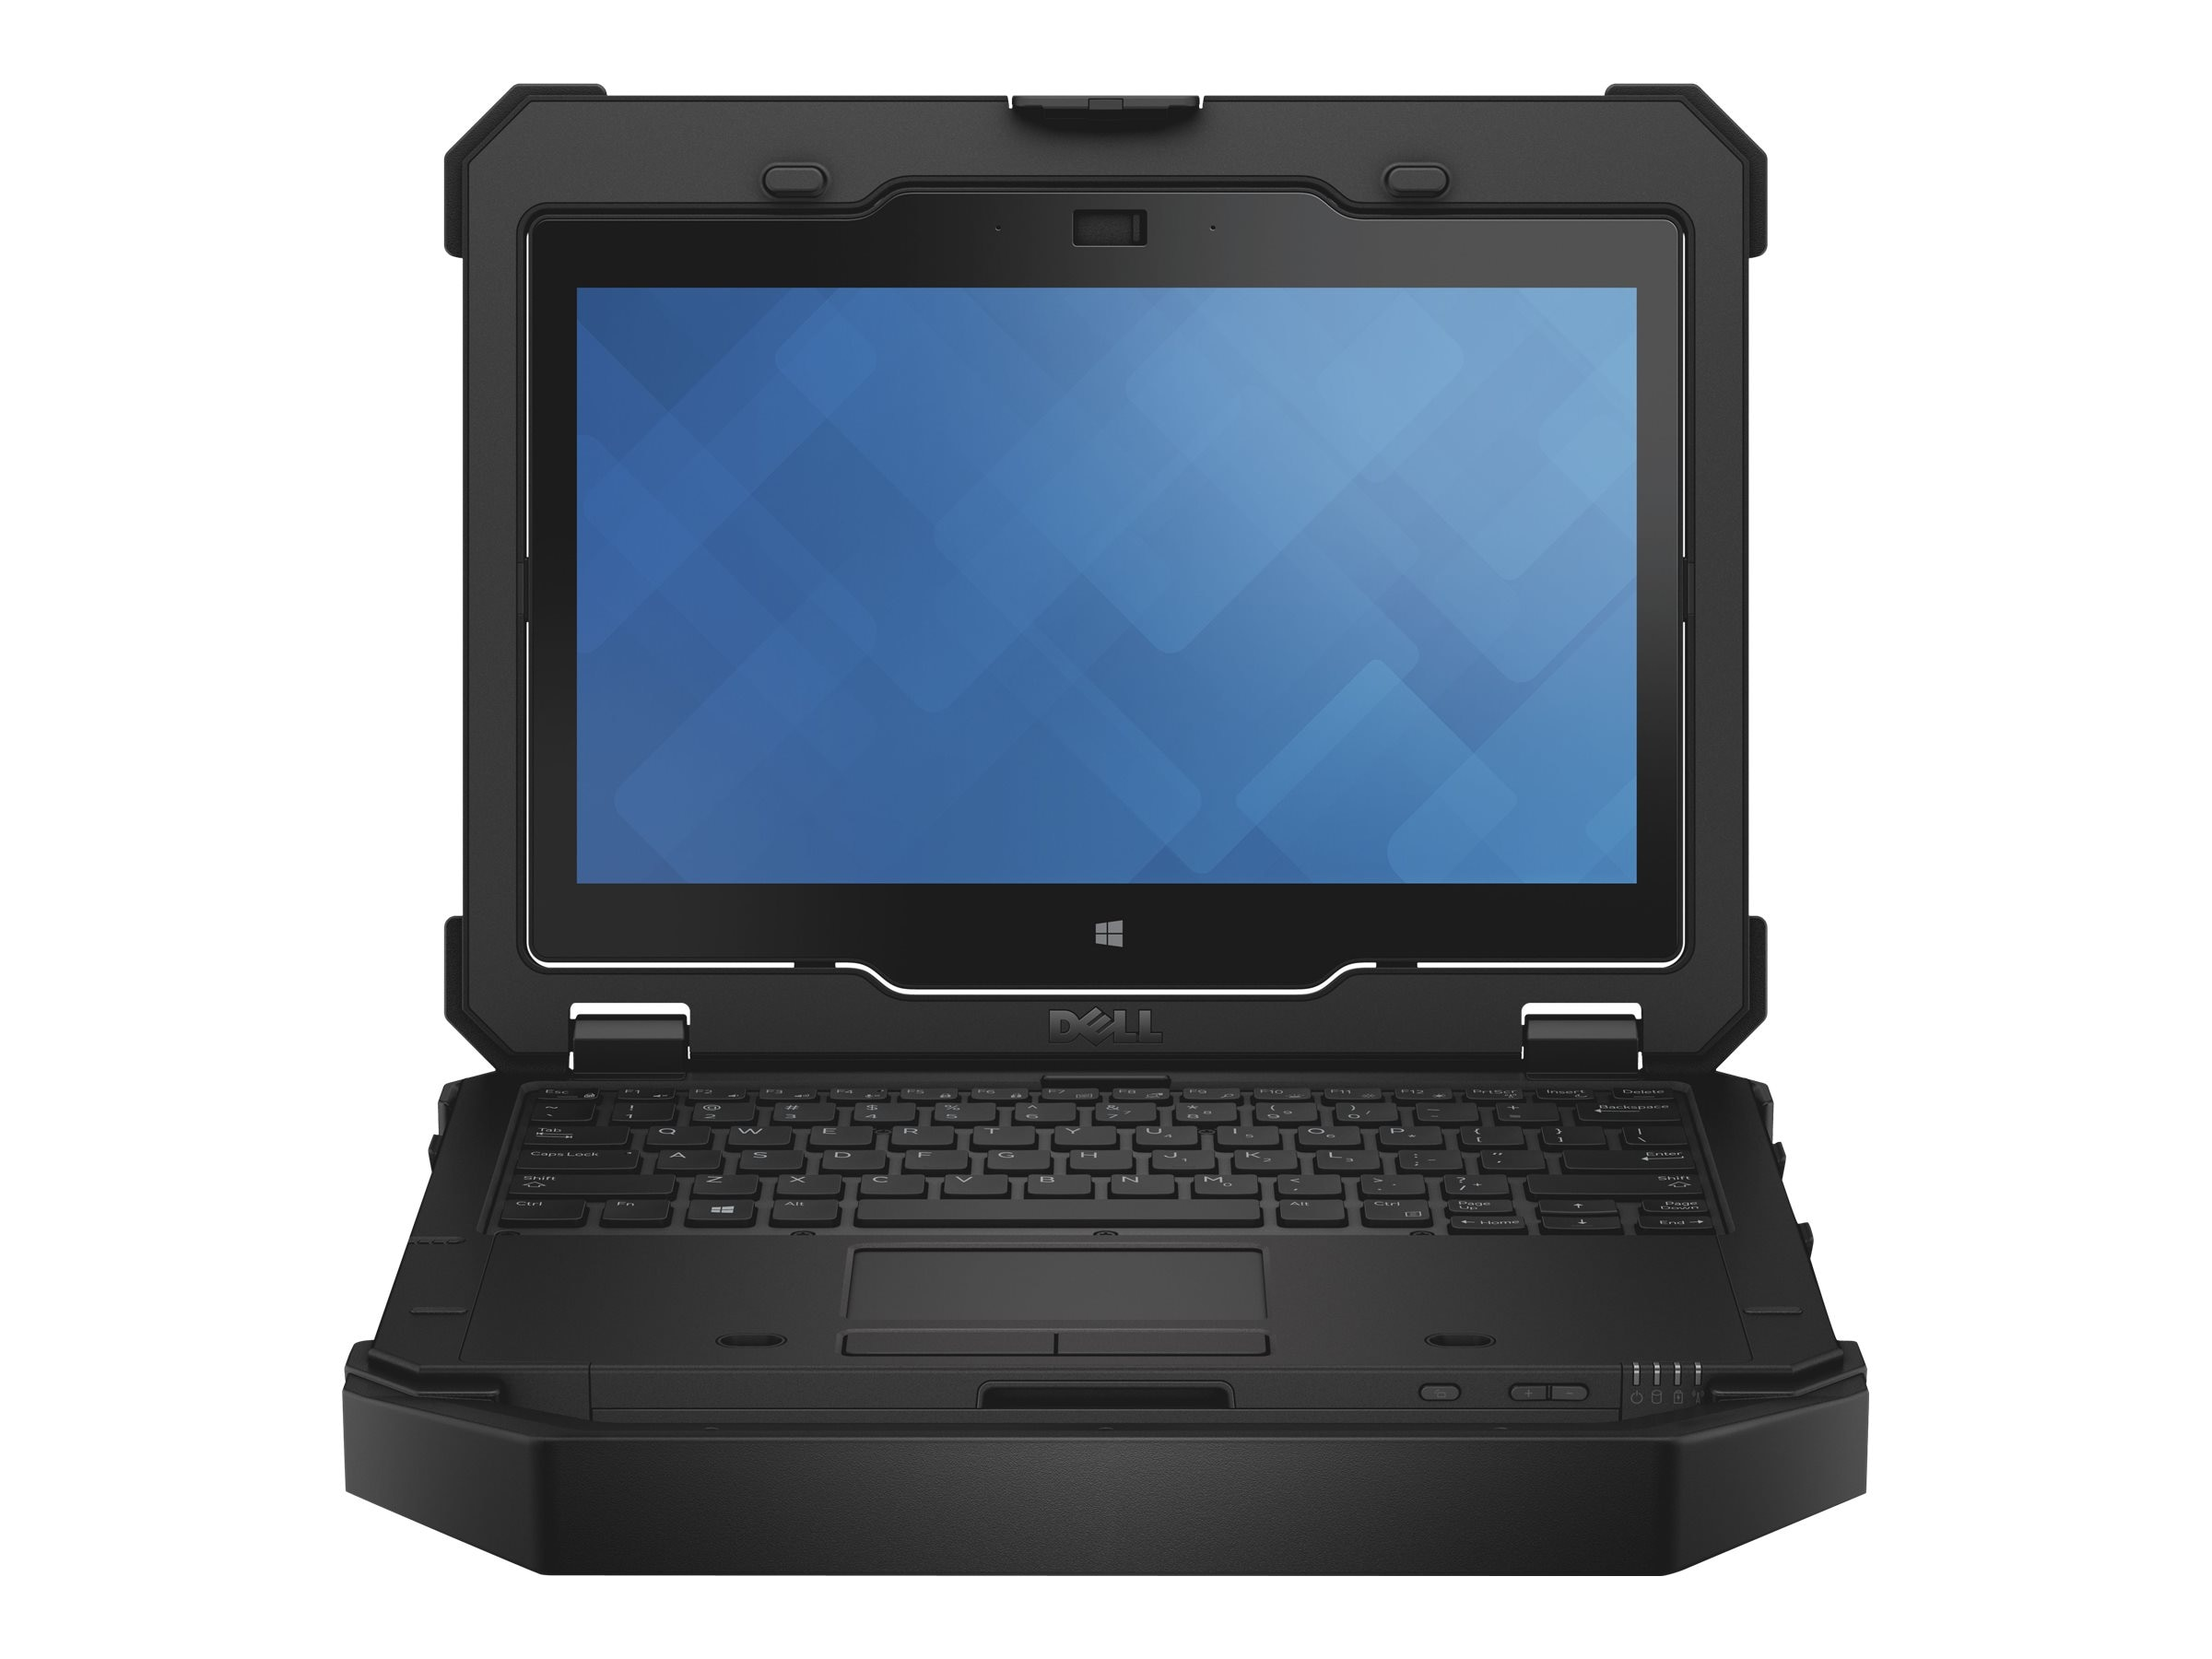 Dell Latitude 12 Rugged Extreme 7214 2.4GHz Core i5 11.6in display, MKRYD